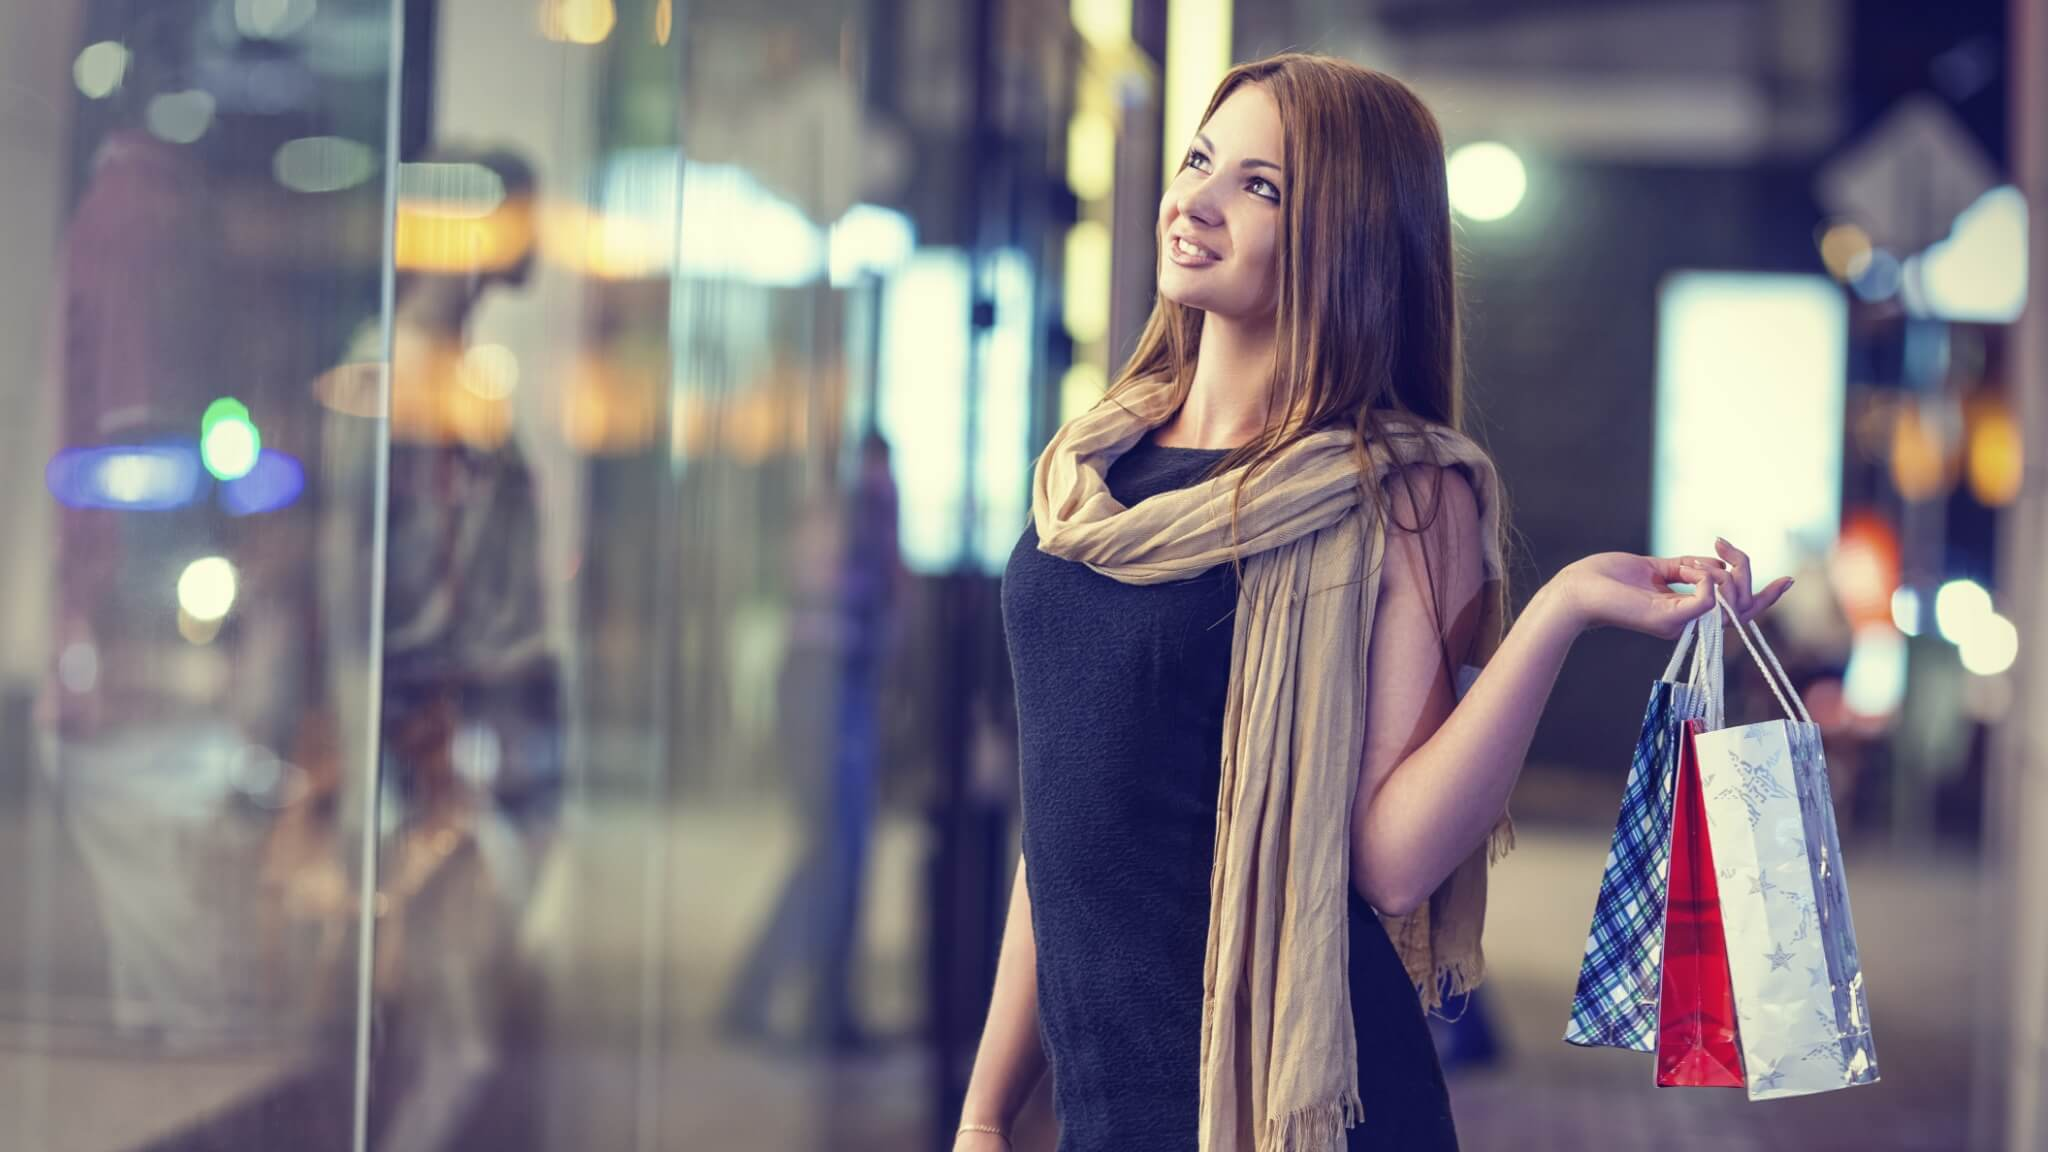 What Customers Want From Their Omni-Channel Experience